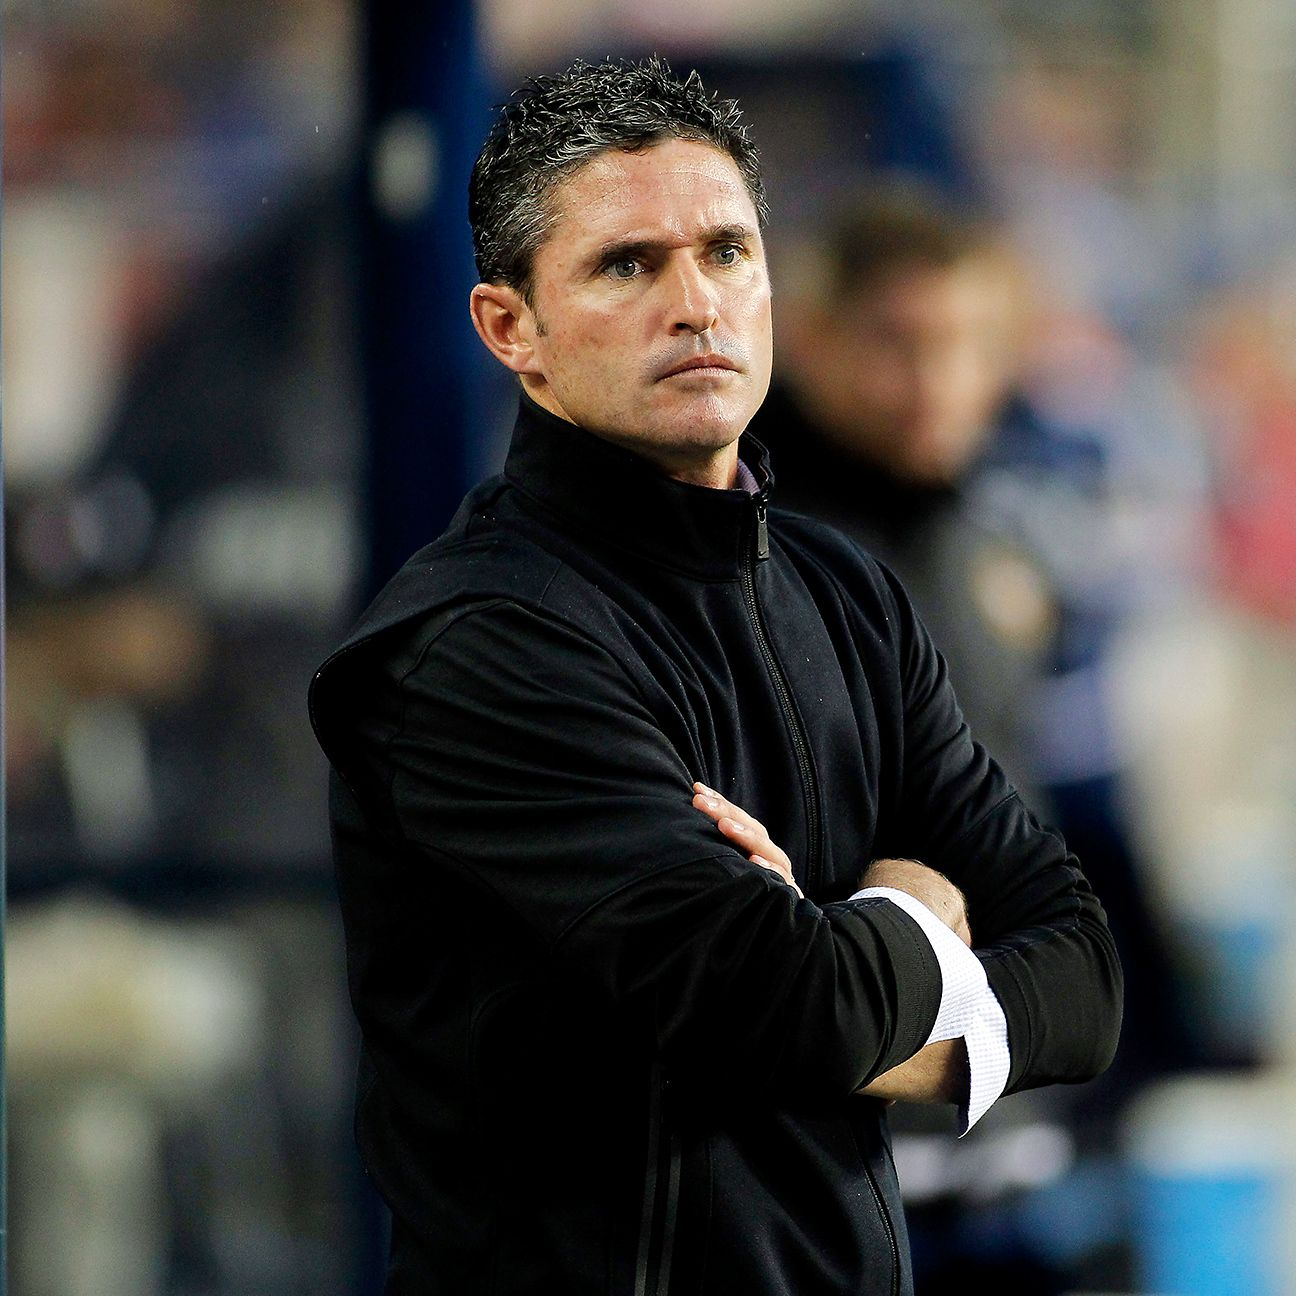 Revs coach Jay Heaps know he needs to make some adjustments to help snap the team out of its struggles.